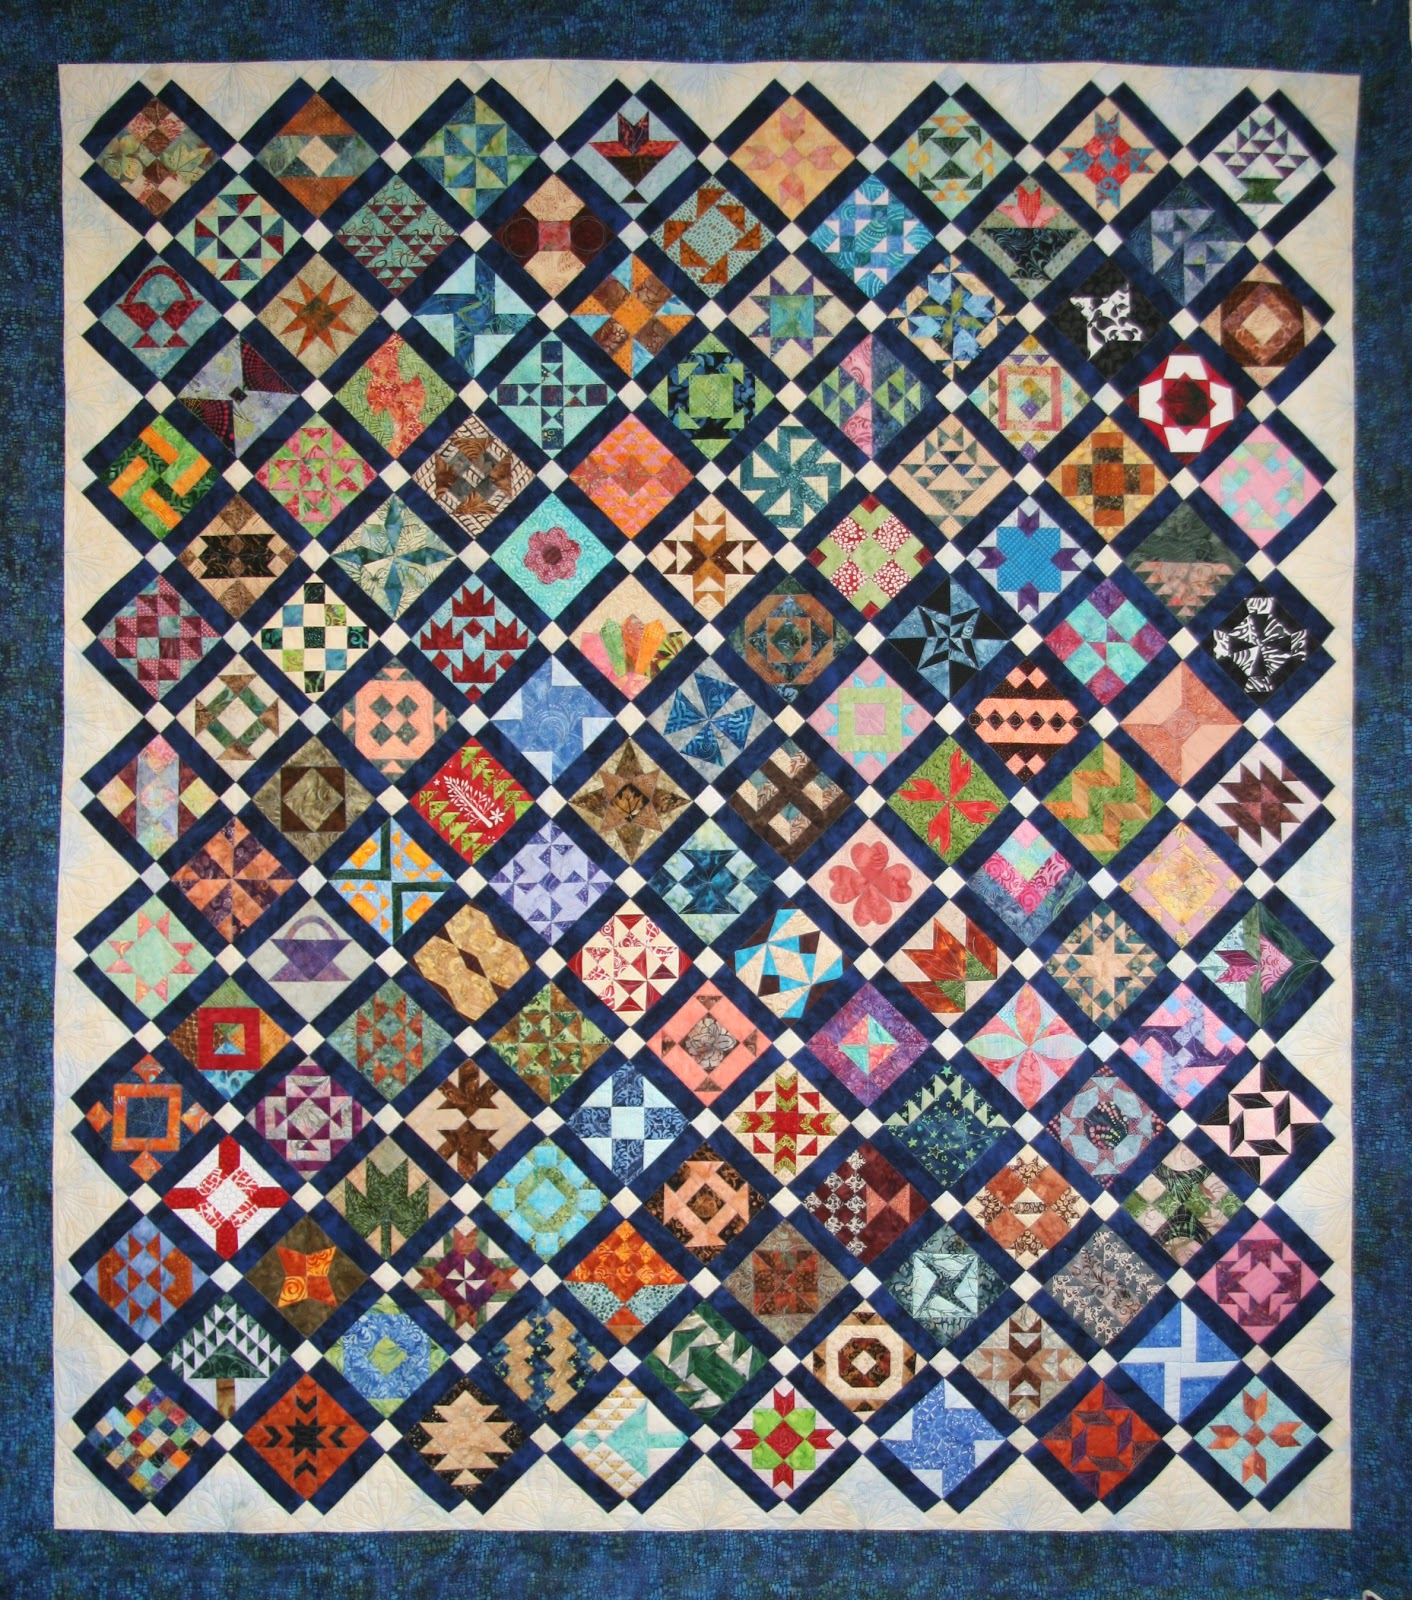 Linda's Quiltmania: My Farmer's Wife Quilt : the farmers wife quilt - Adamdwight.com